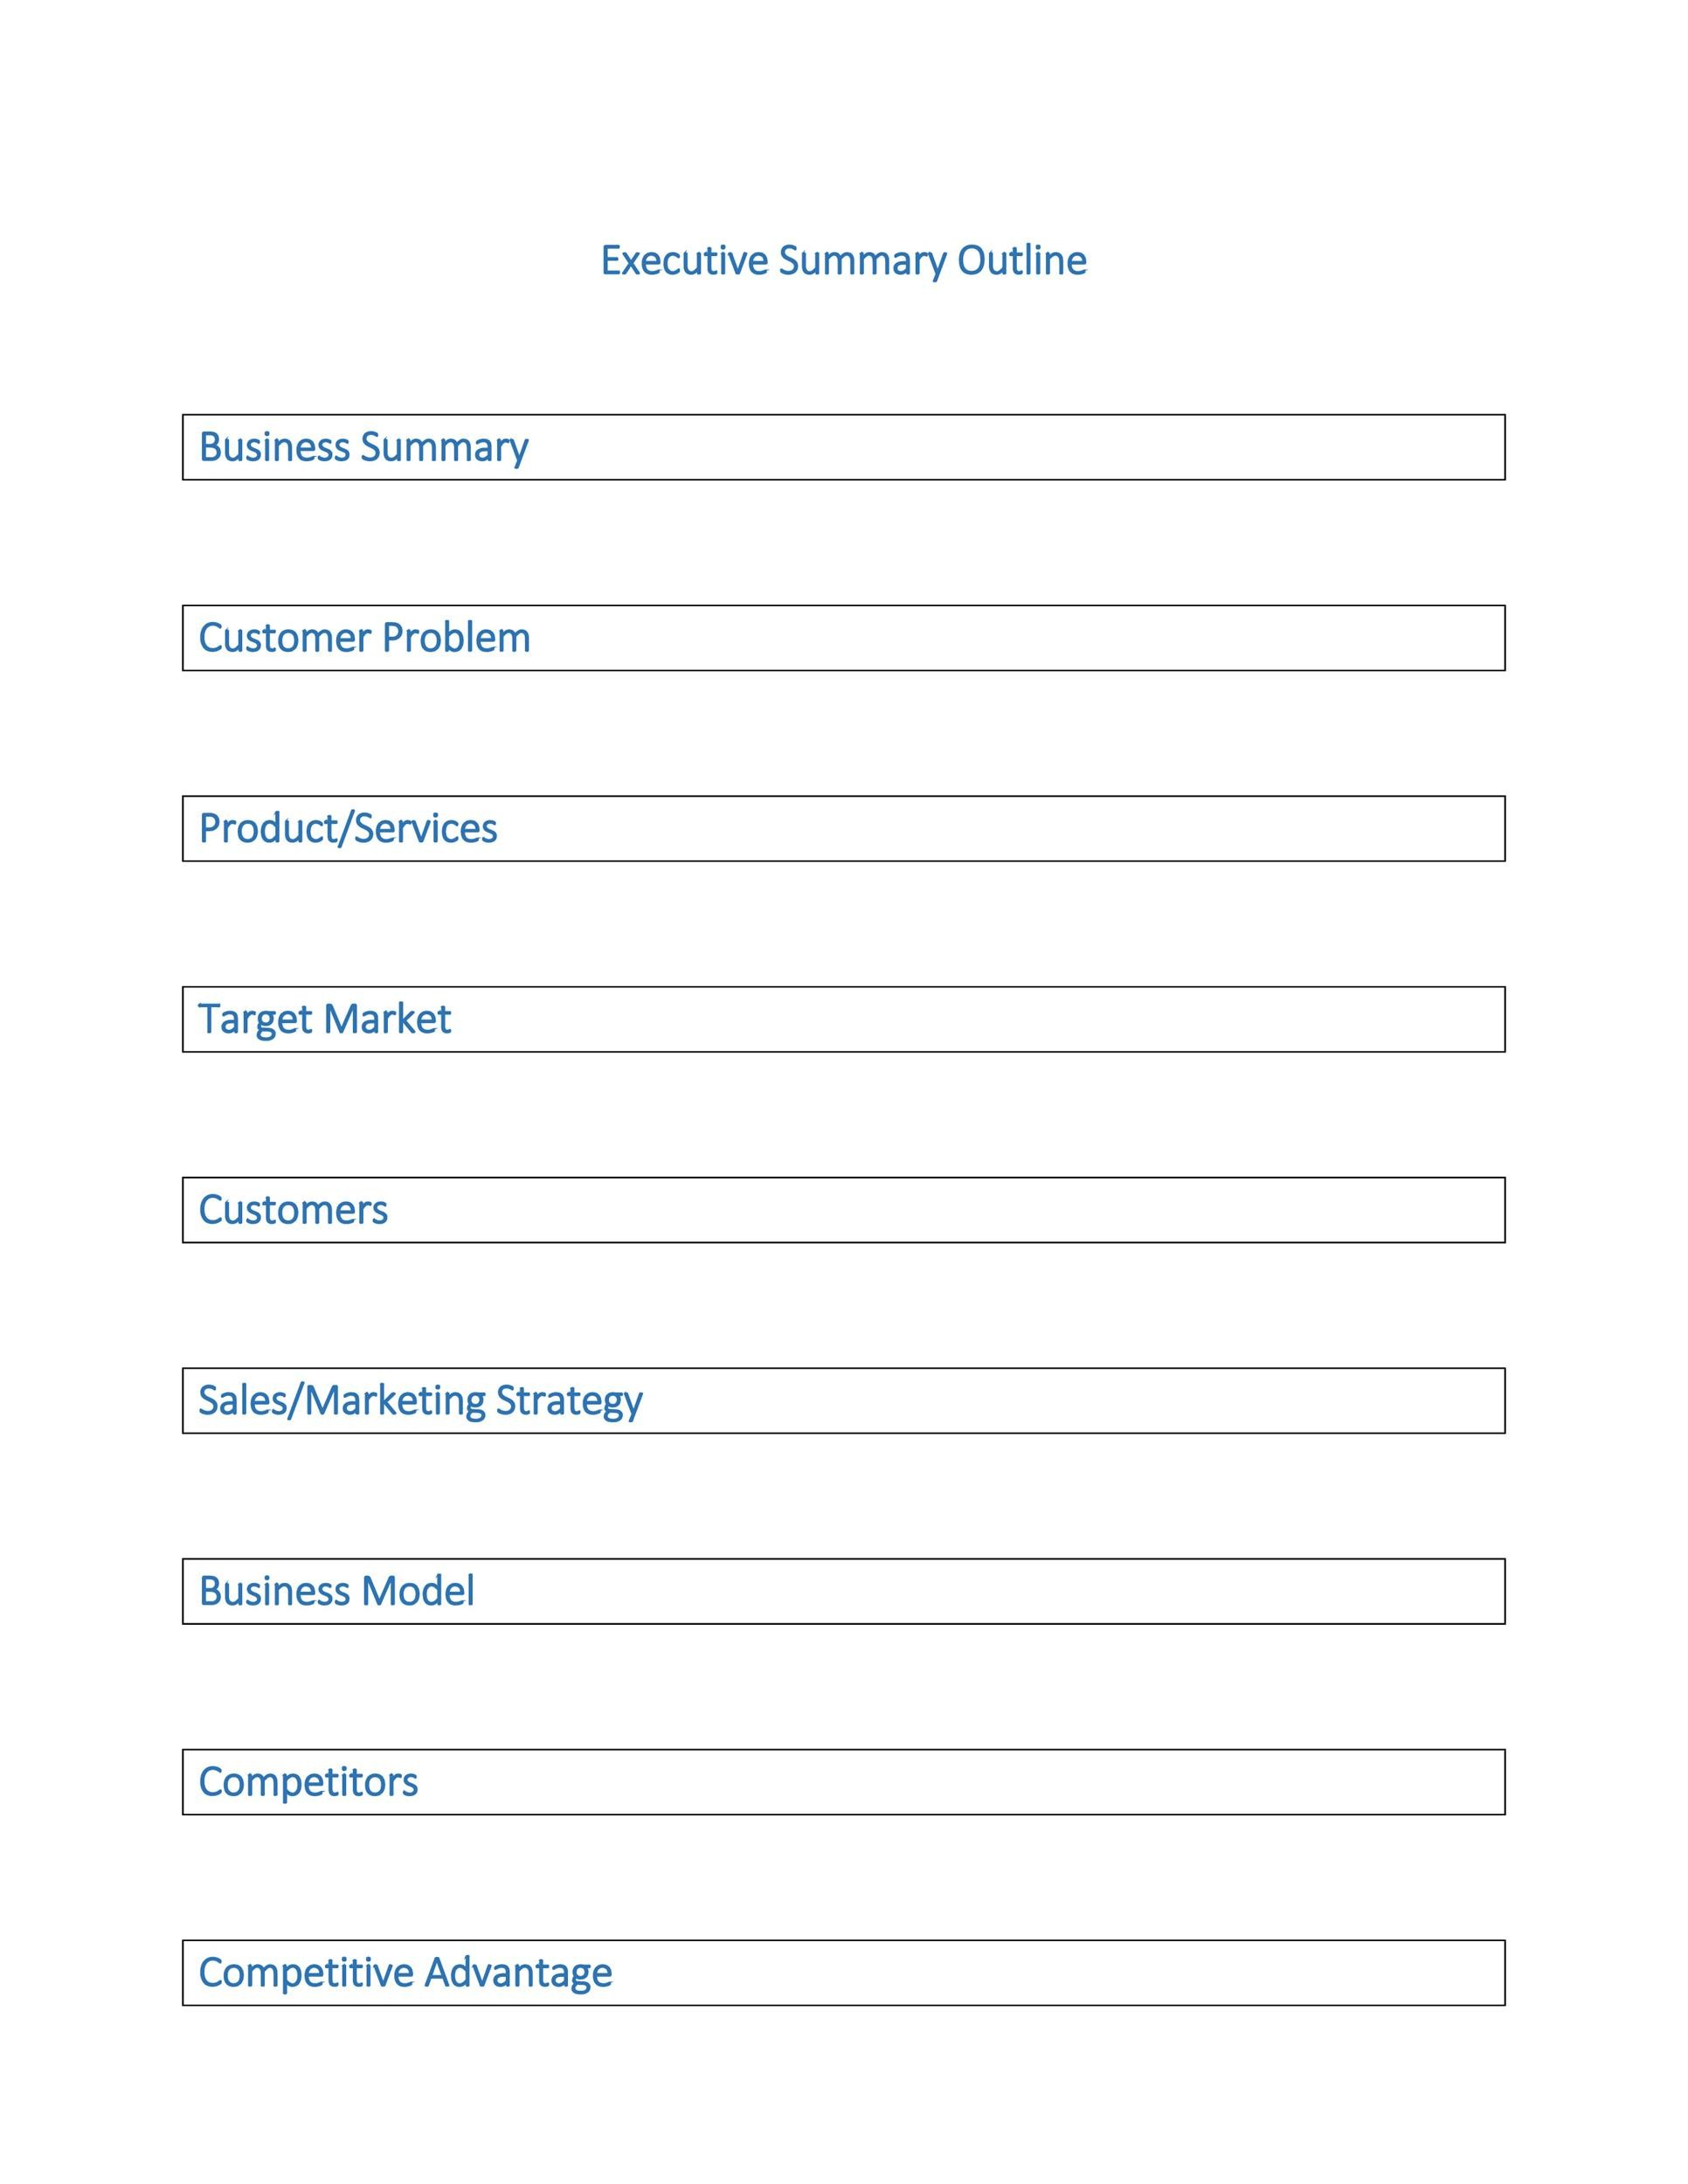 30+ Perfect Executive Summary Examples \ Templates - Template Lab - business summary template